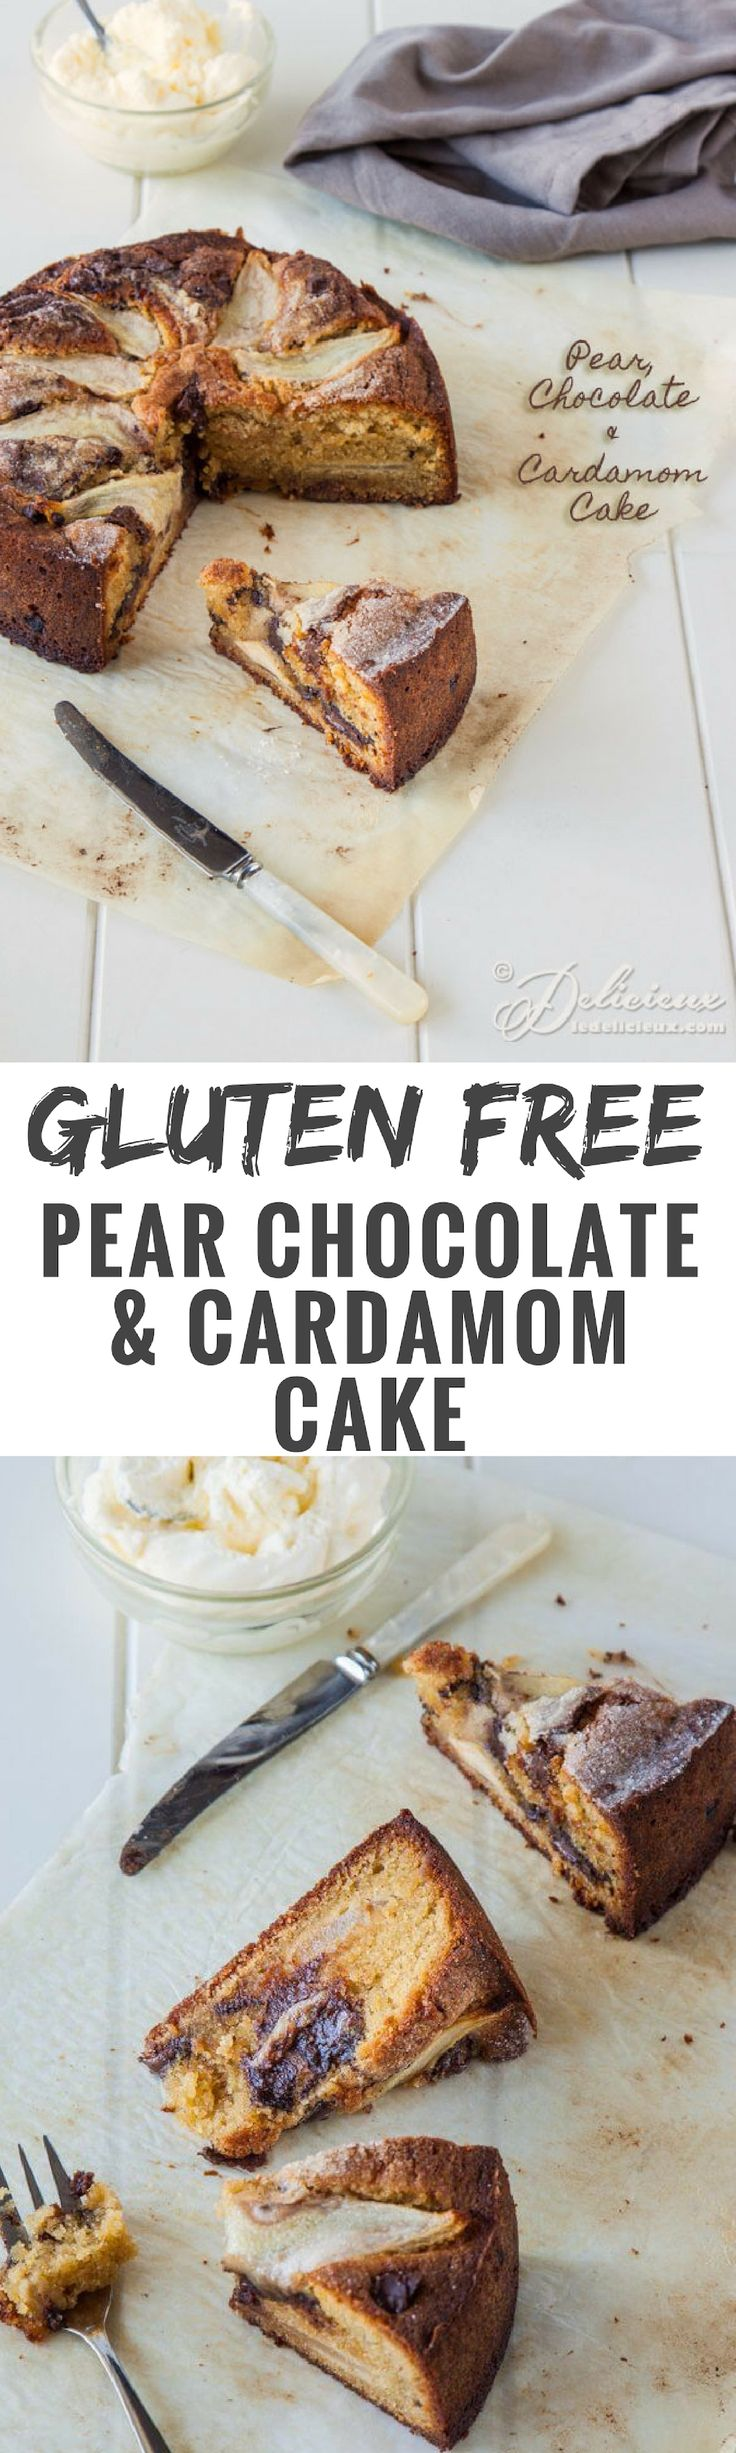 Pears and chocolate are a classic combination that get elevated to a whole other level in this gorgeous gluten free cardamom cake recipe.